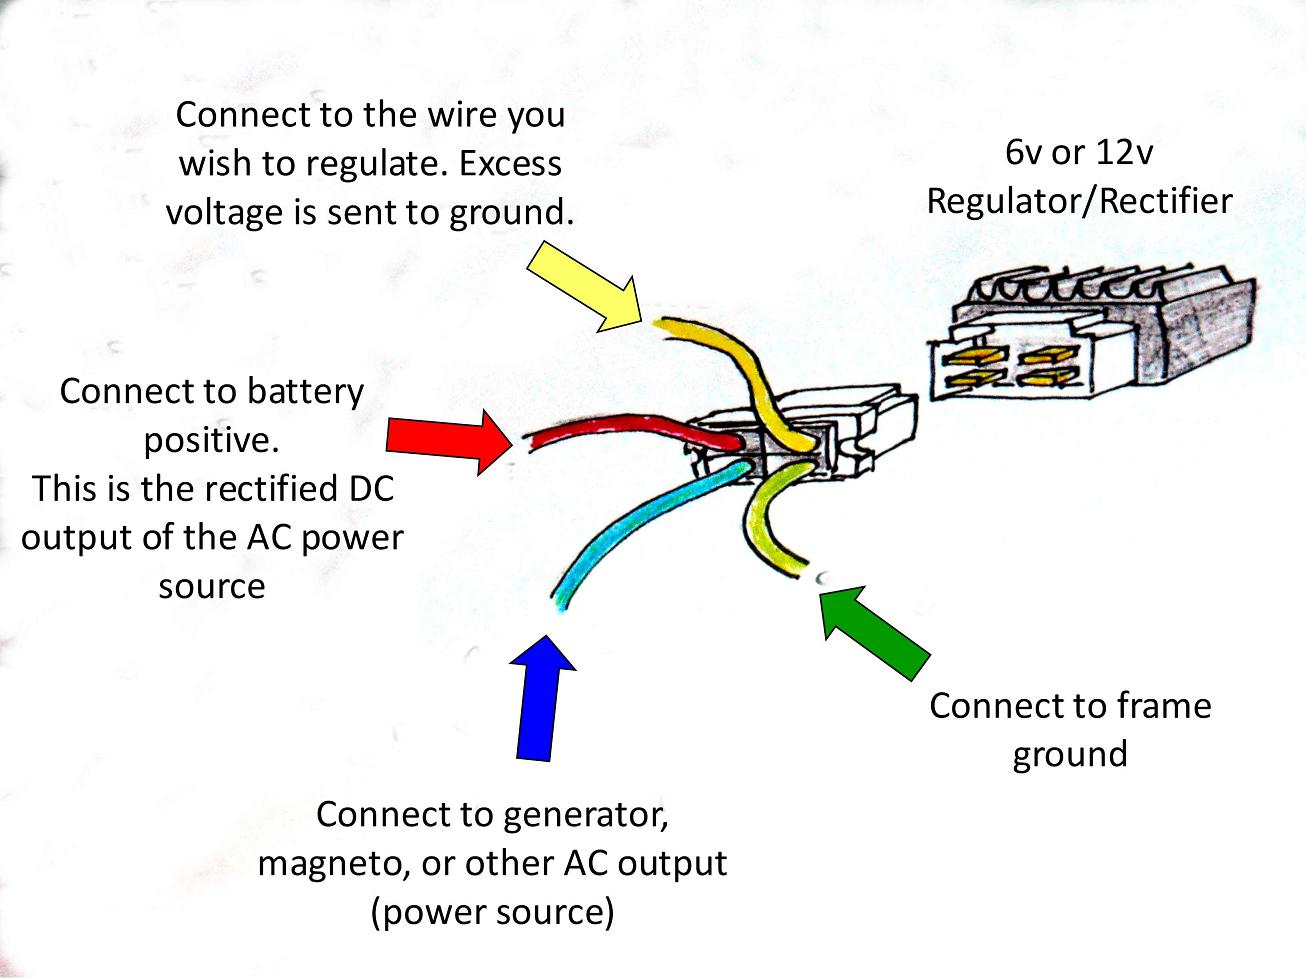 dratv_2267_13269058 4 wire regulator rectifier wiring diagram efcaviation com 4 pin voltage regulator wiring diagram at soozxer.org